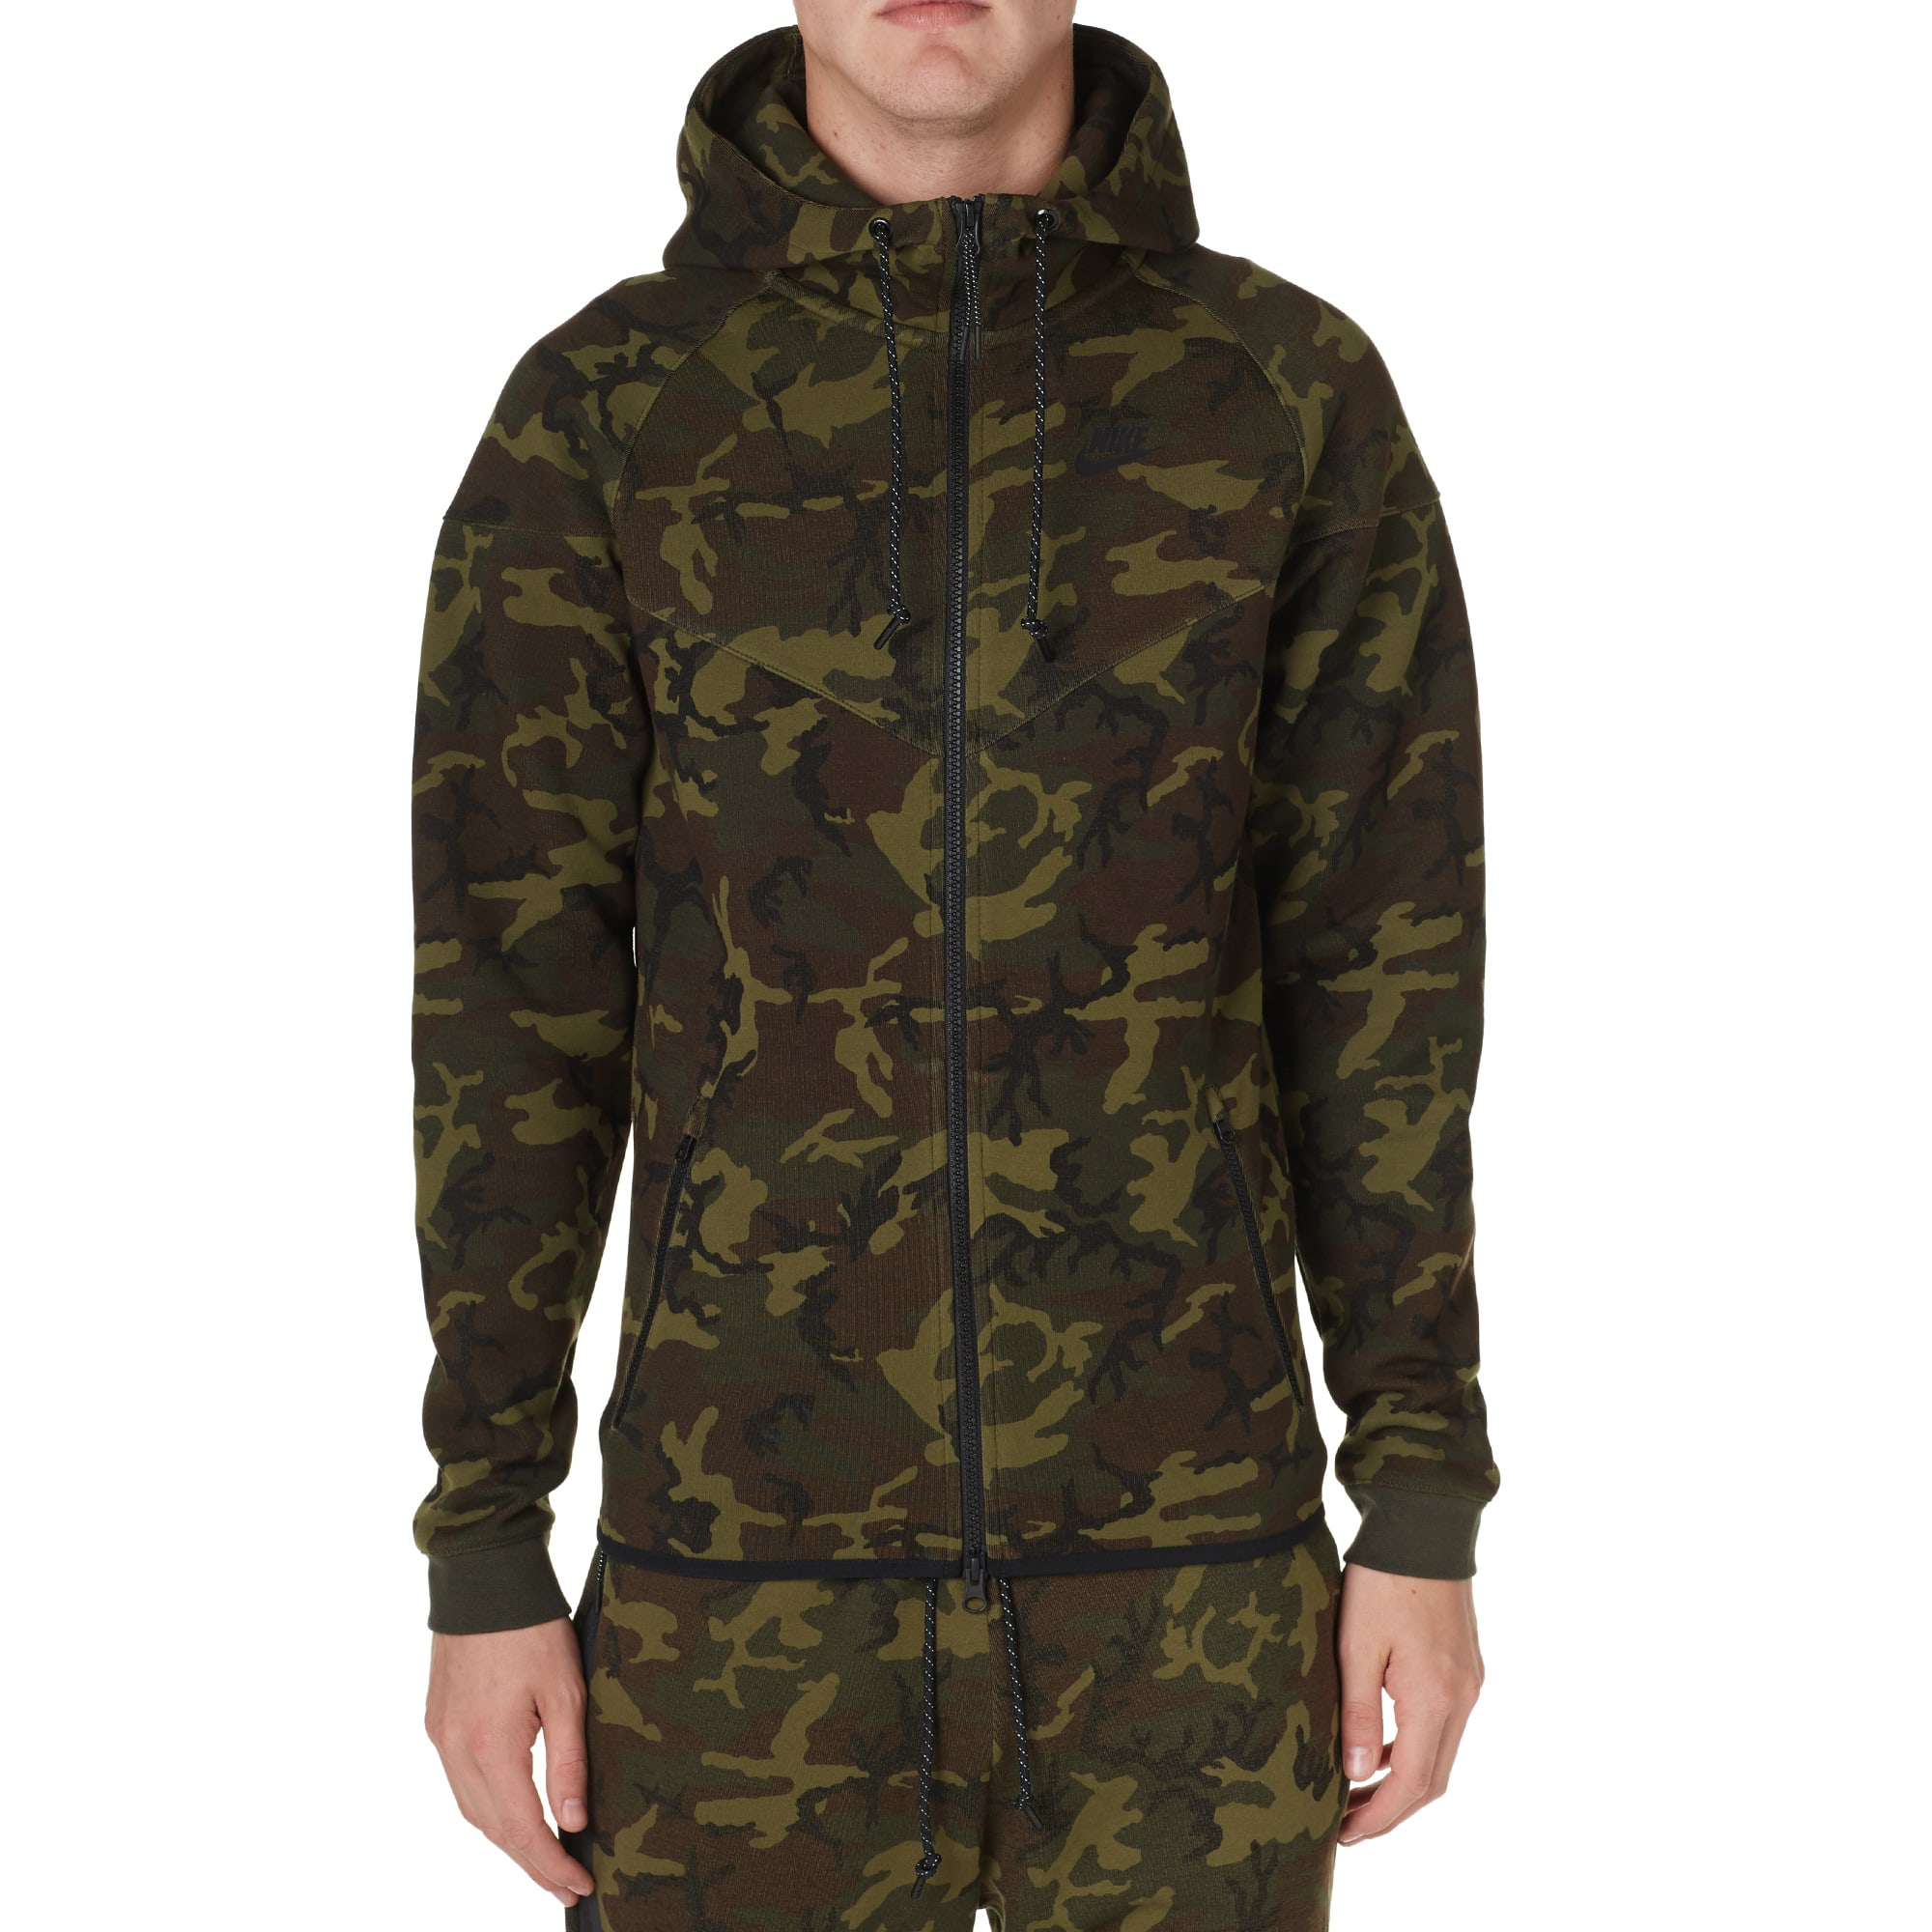 nike tech fleece camo windrunner,Tech Fleece Windrunner Camo